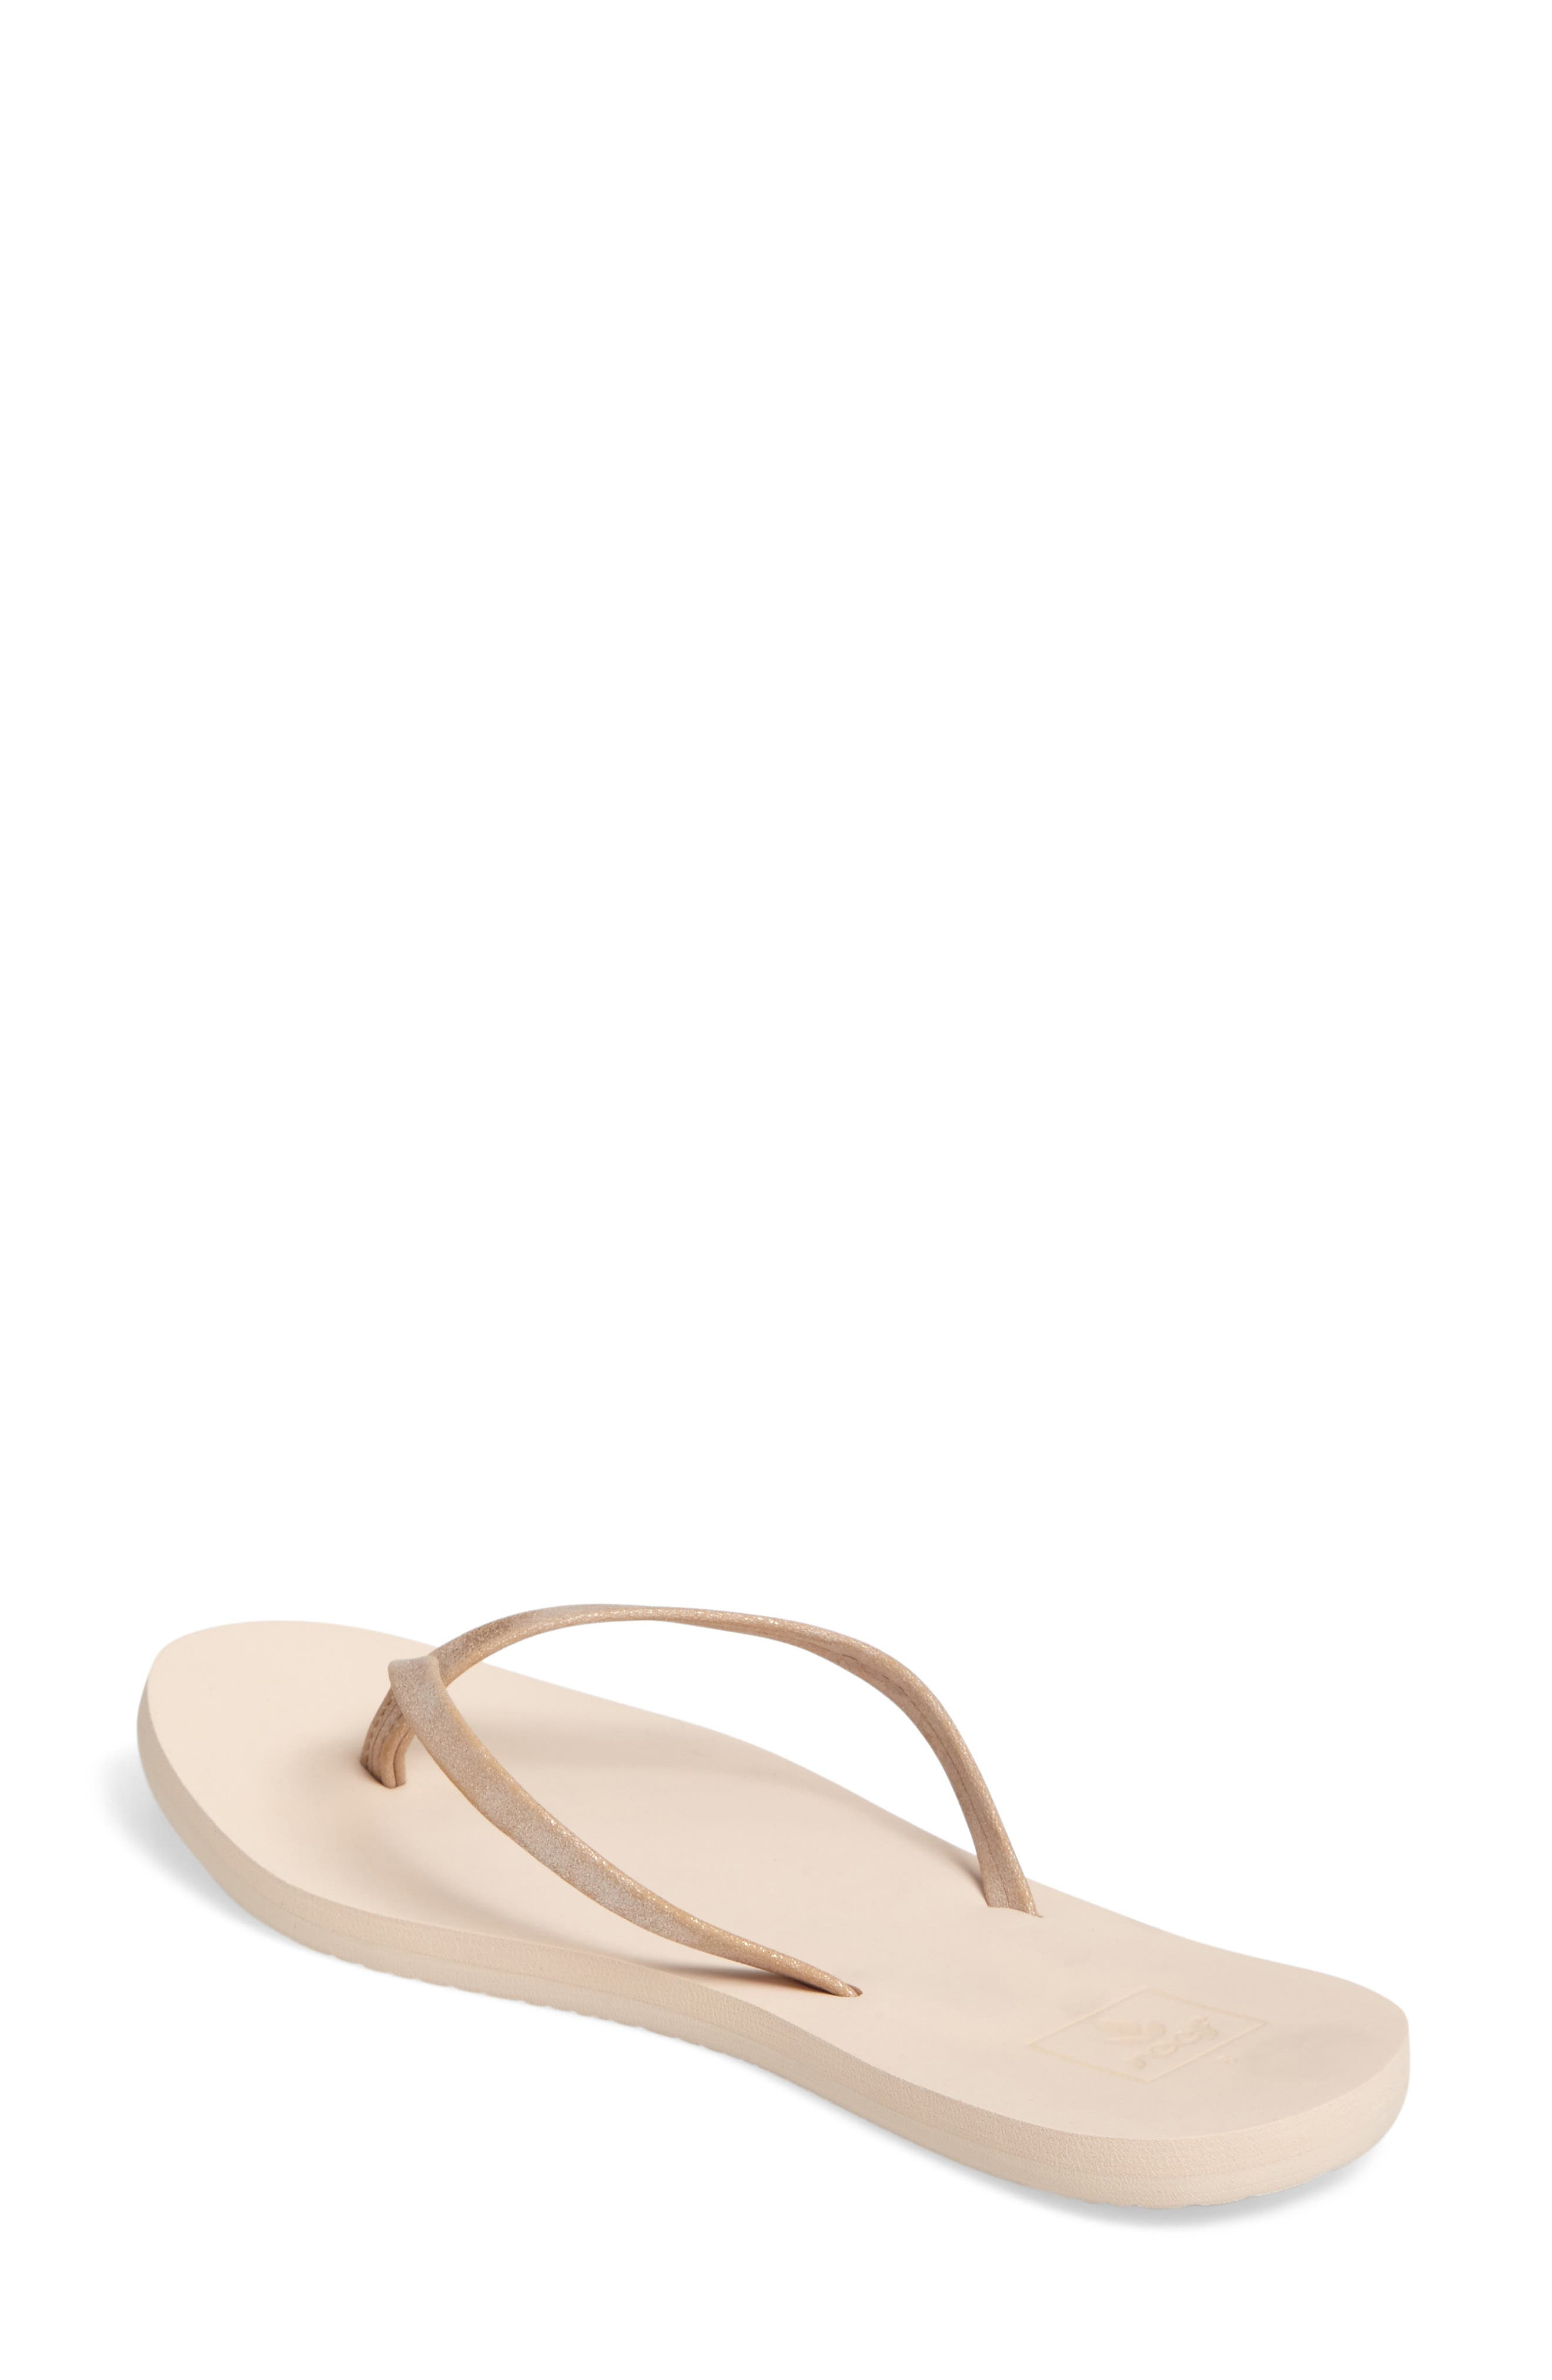 Bliss Nights Flip Flop,                             Alternate thumbnail 8, color,